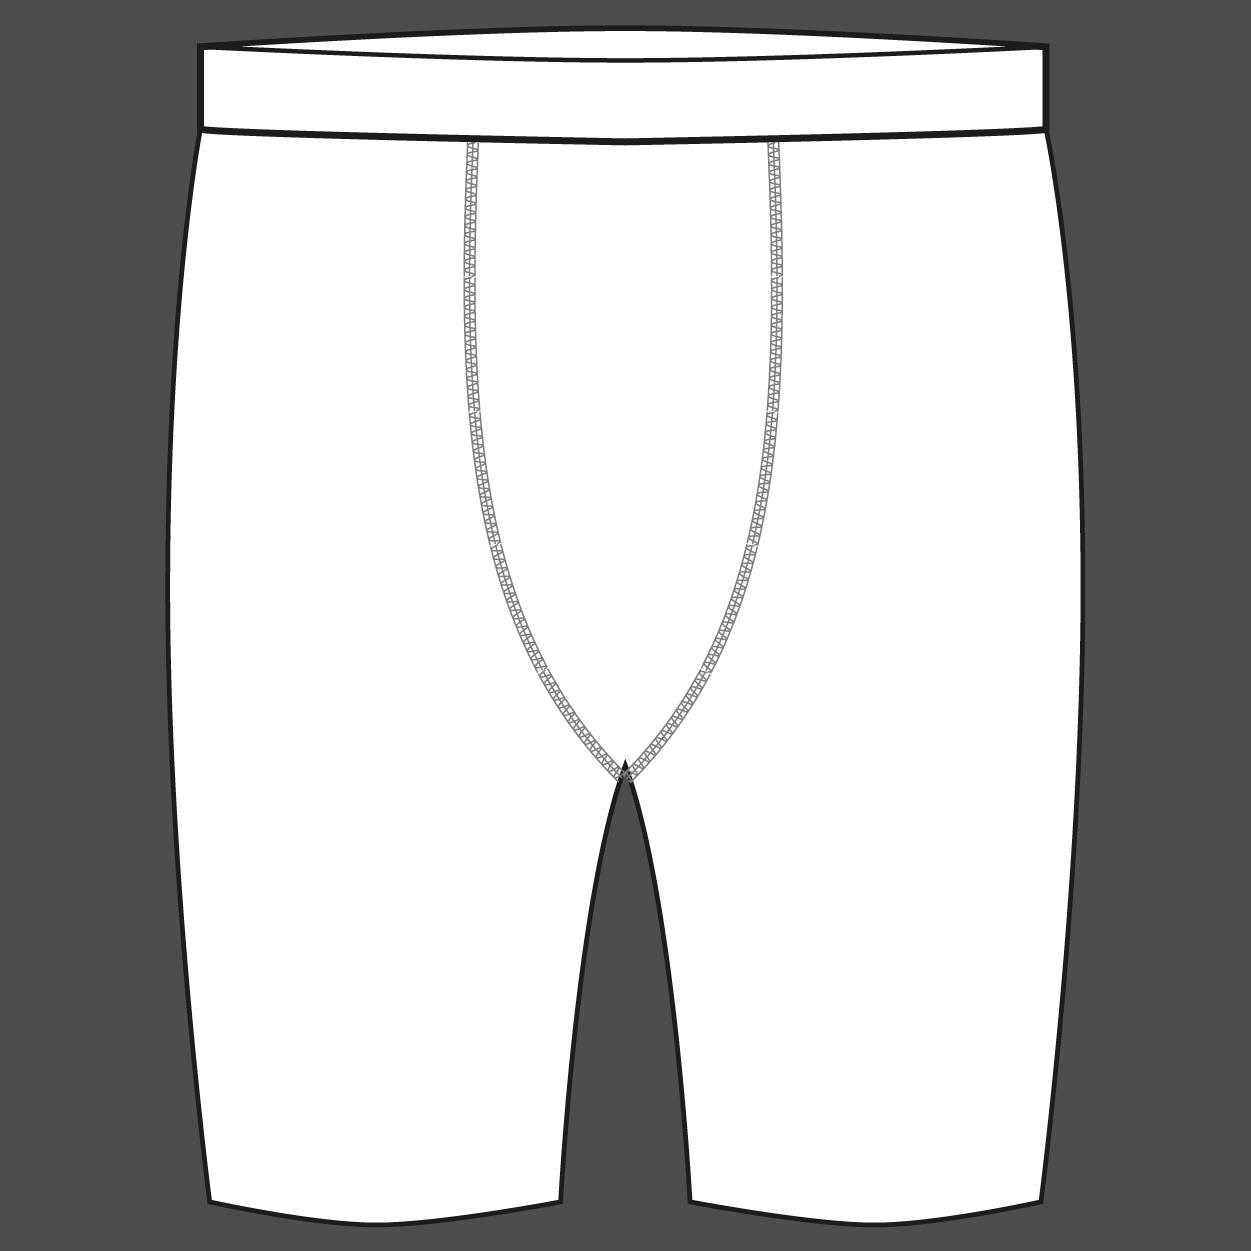 Men's Compression Shorts - Retail Price: $36.99  Team Price 12-23: $31.99 Team Price 24+: $29.99 Team Price 50+: Contact your Emblem Rep for a custom quoteFabric: LycraSizes: YXS, YS, YM, YL, XS, S, M, L, XL, XXL, XXXLOptions: N/A